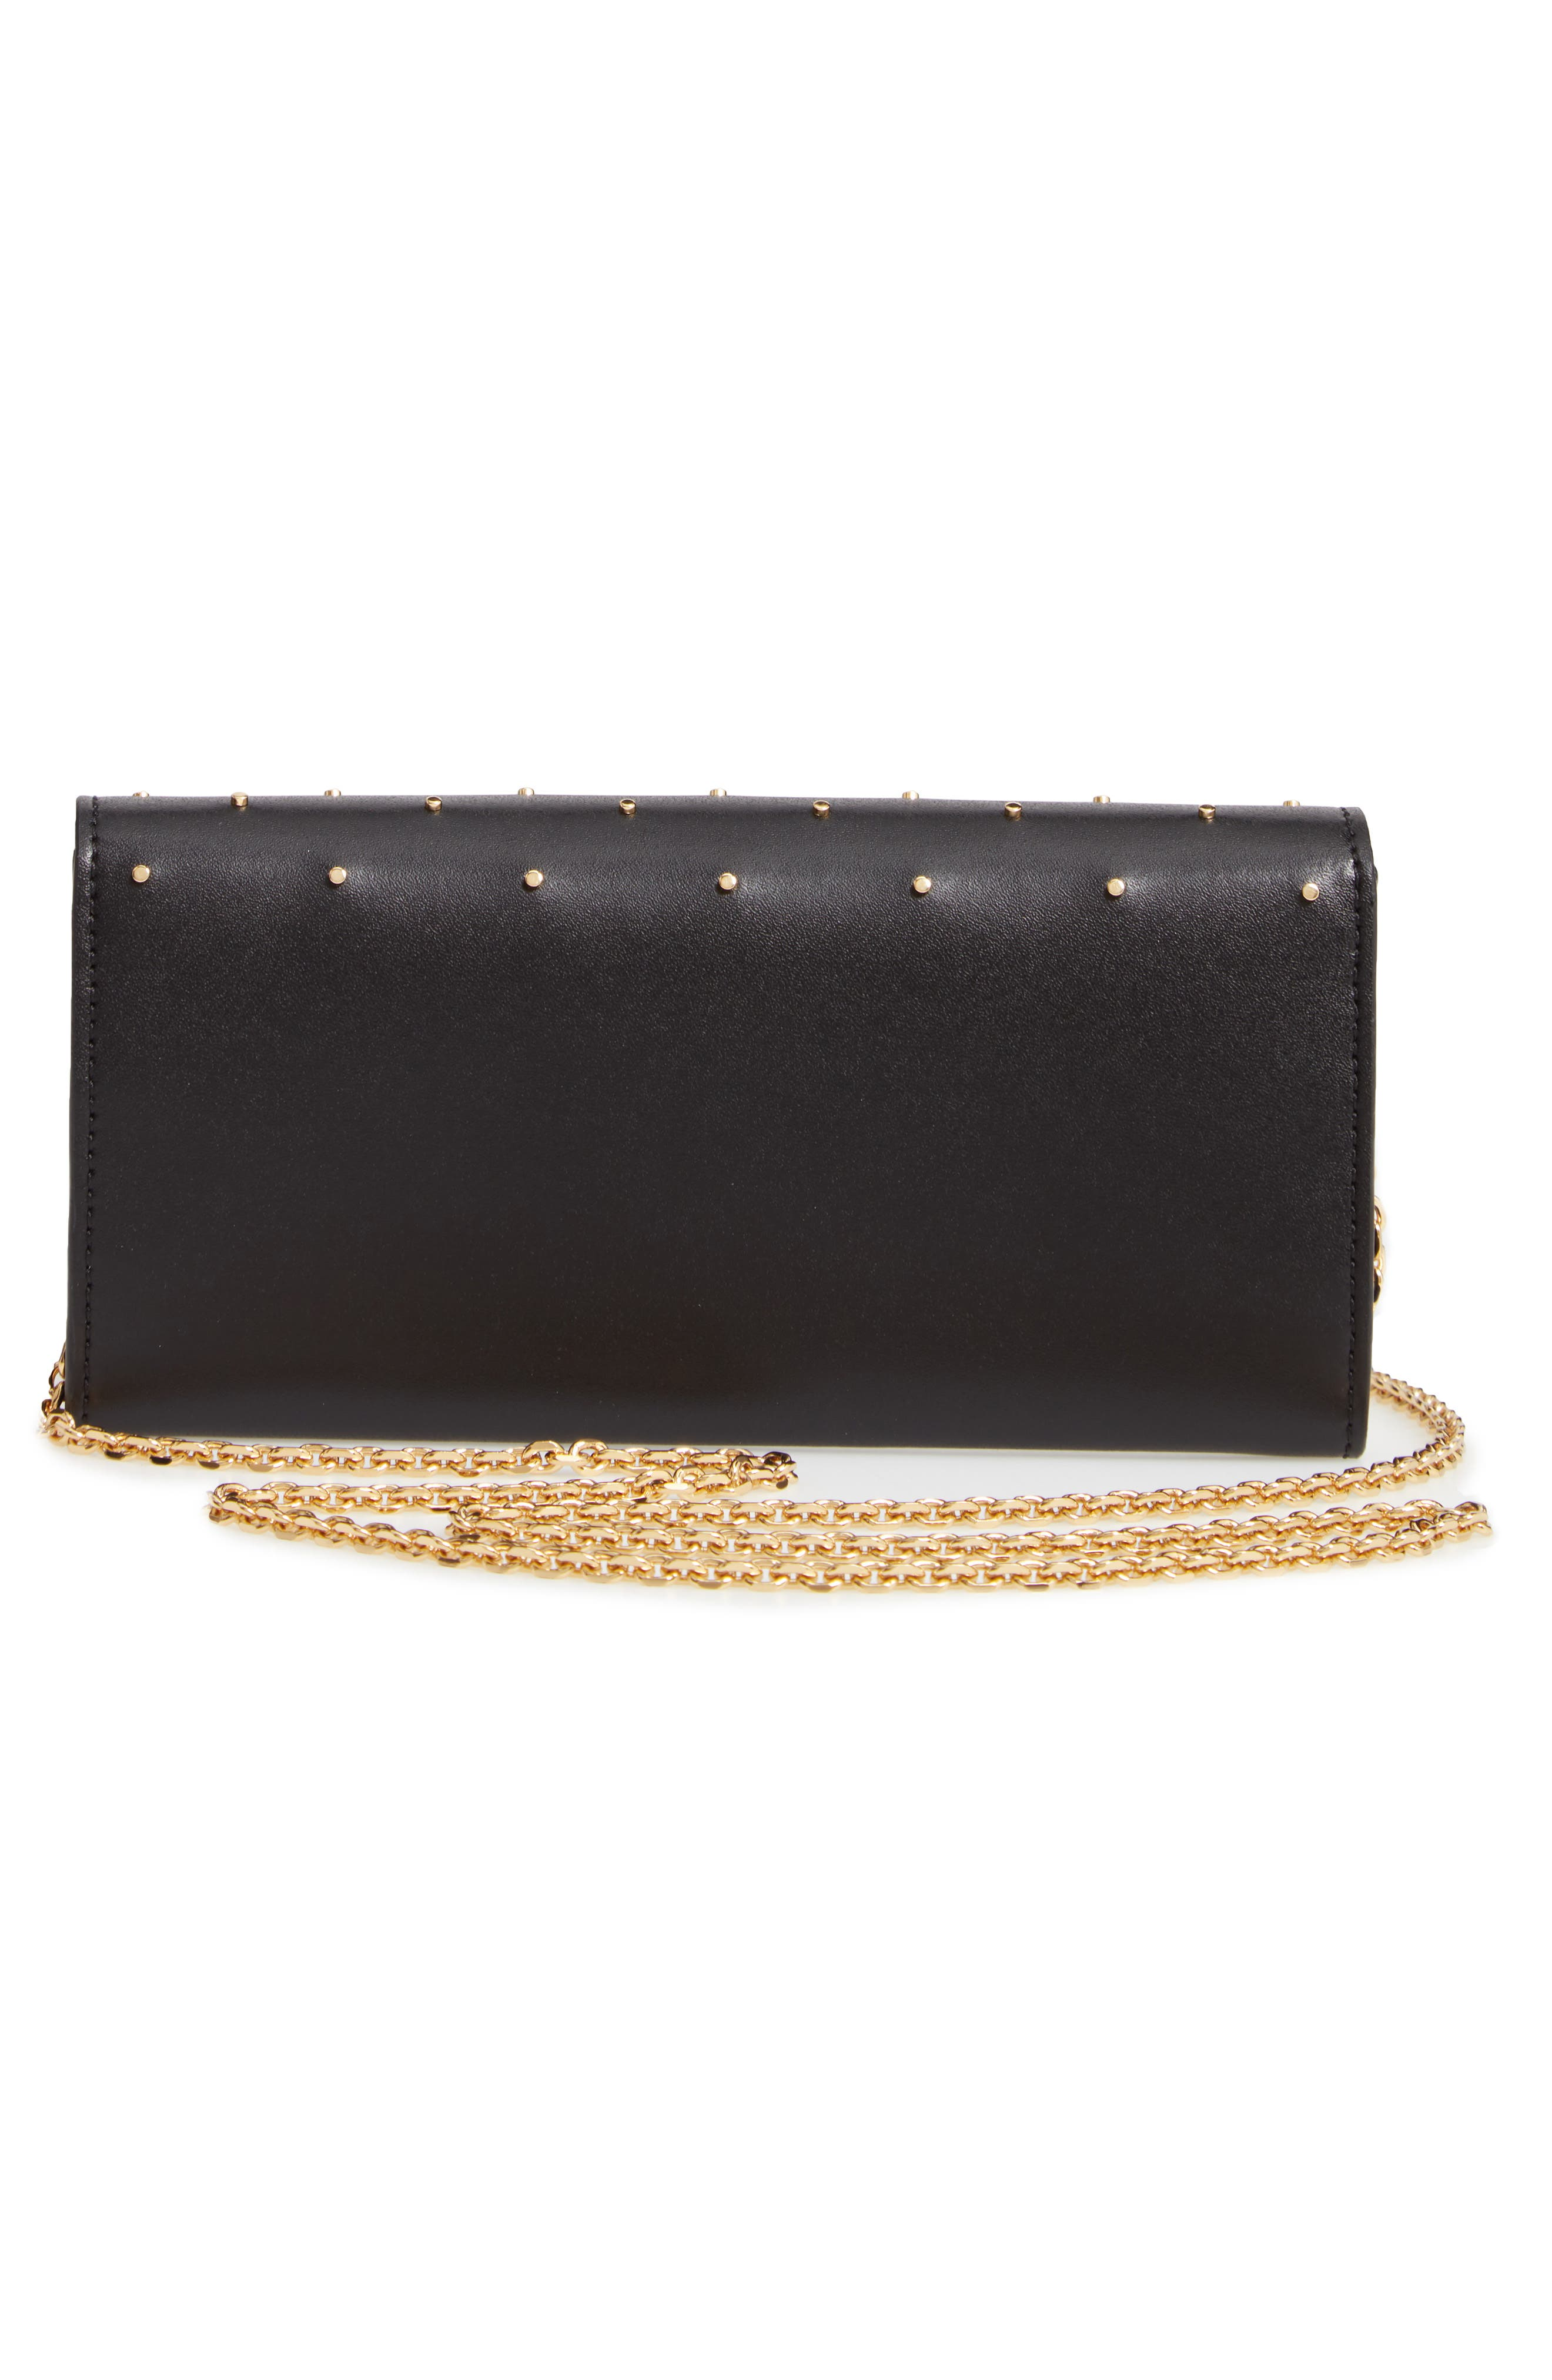 Studded Calfskin Leather Continental Wallet on a Chain,                             Alternate thumbnail 3, color,                             NERO/ ORO SOFT